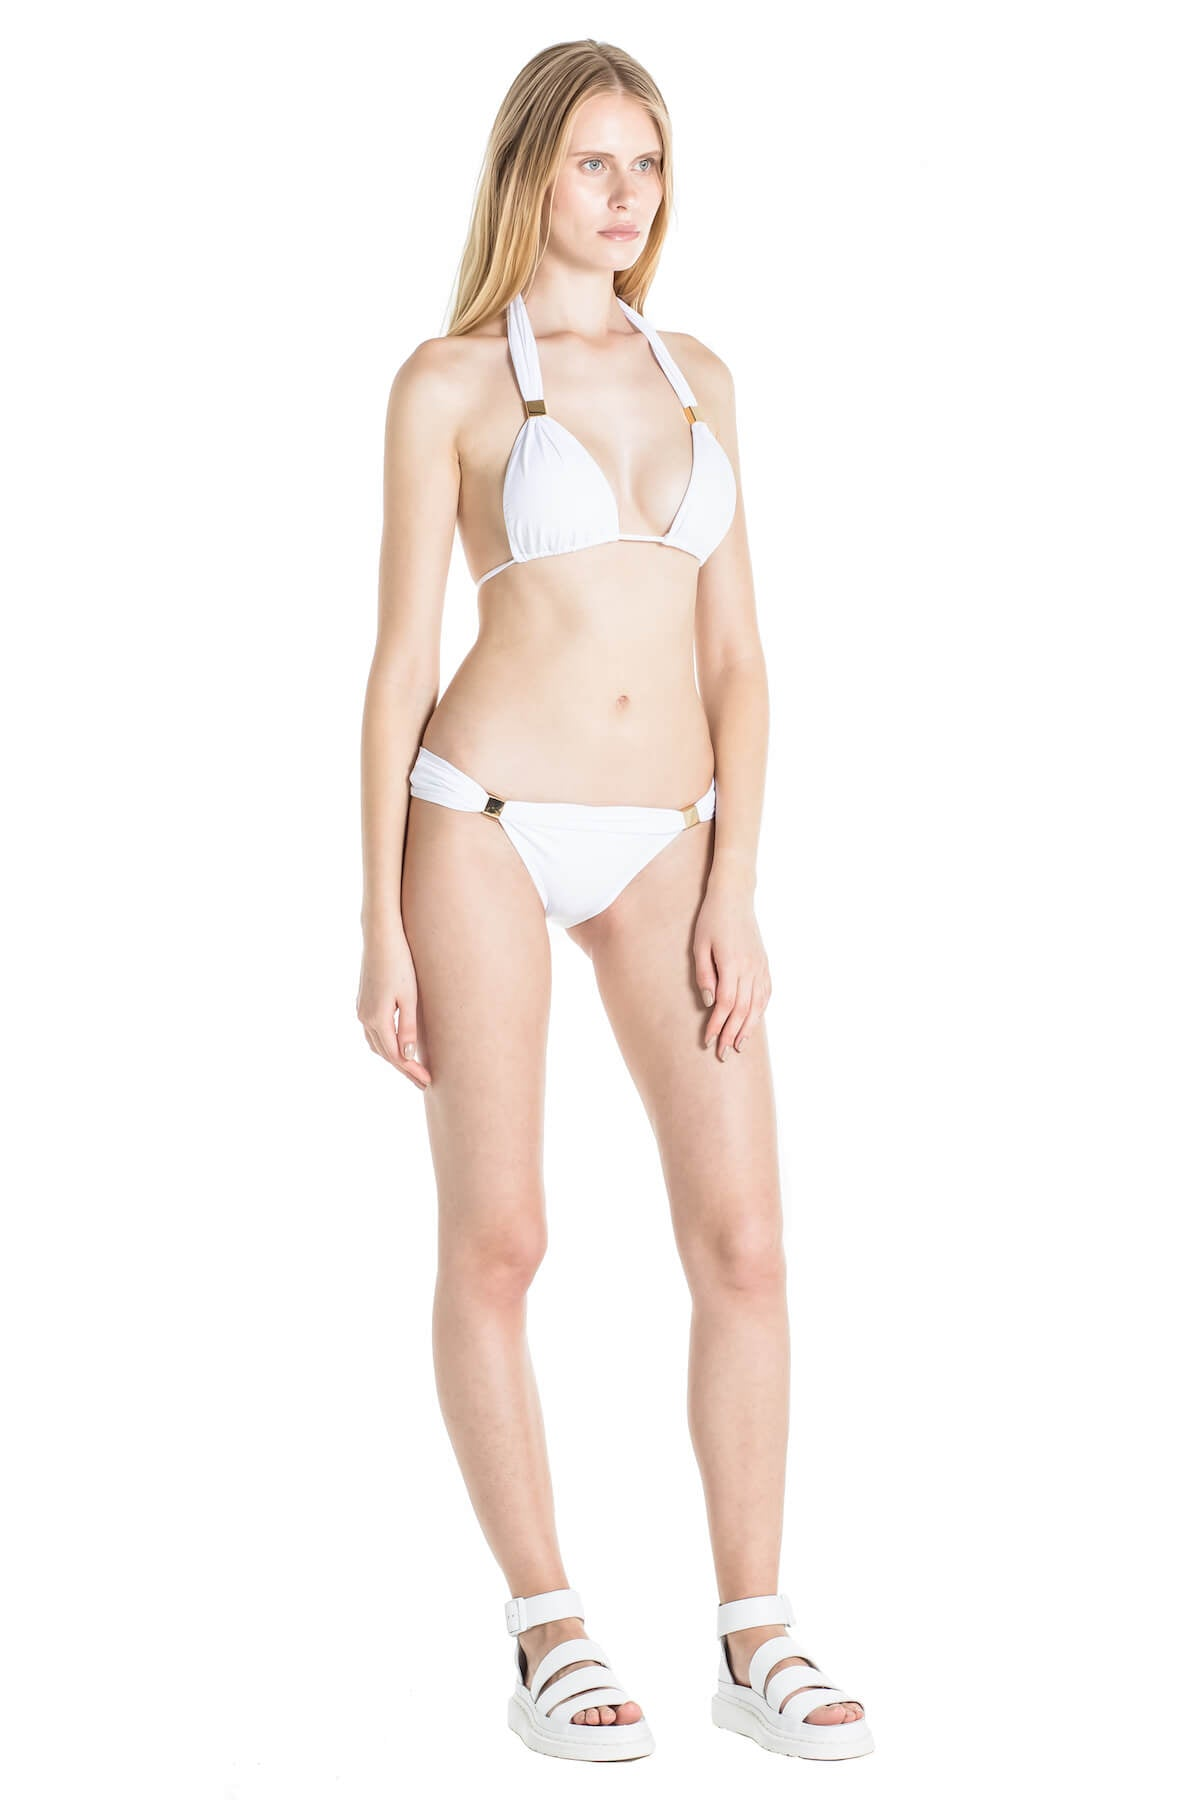 Model shows the side of the Nina white bathing suit.